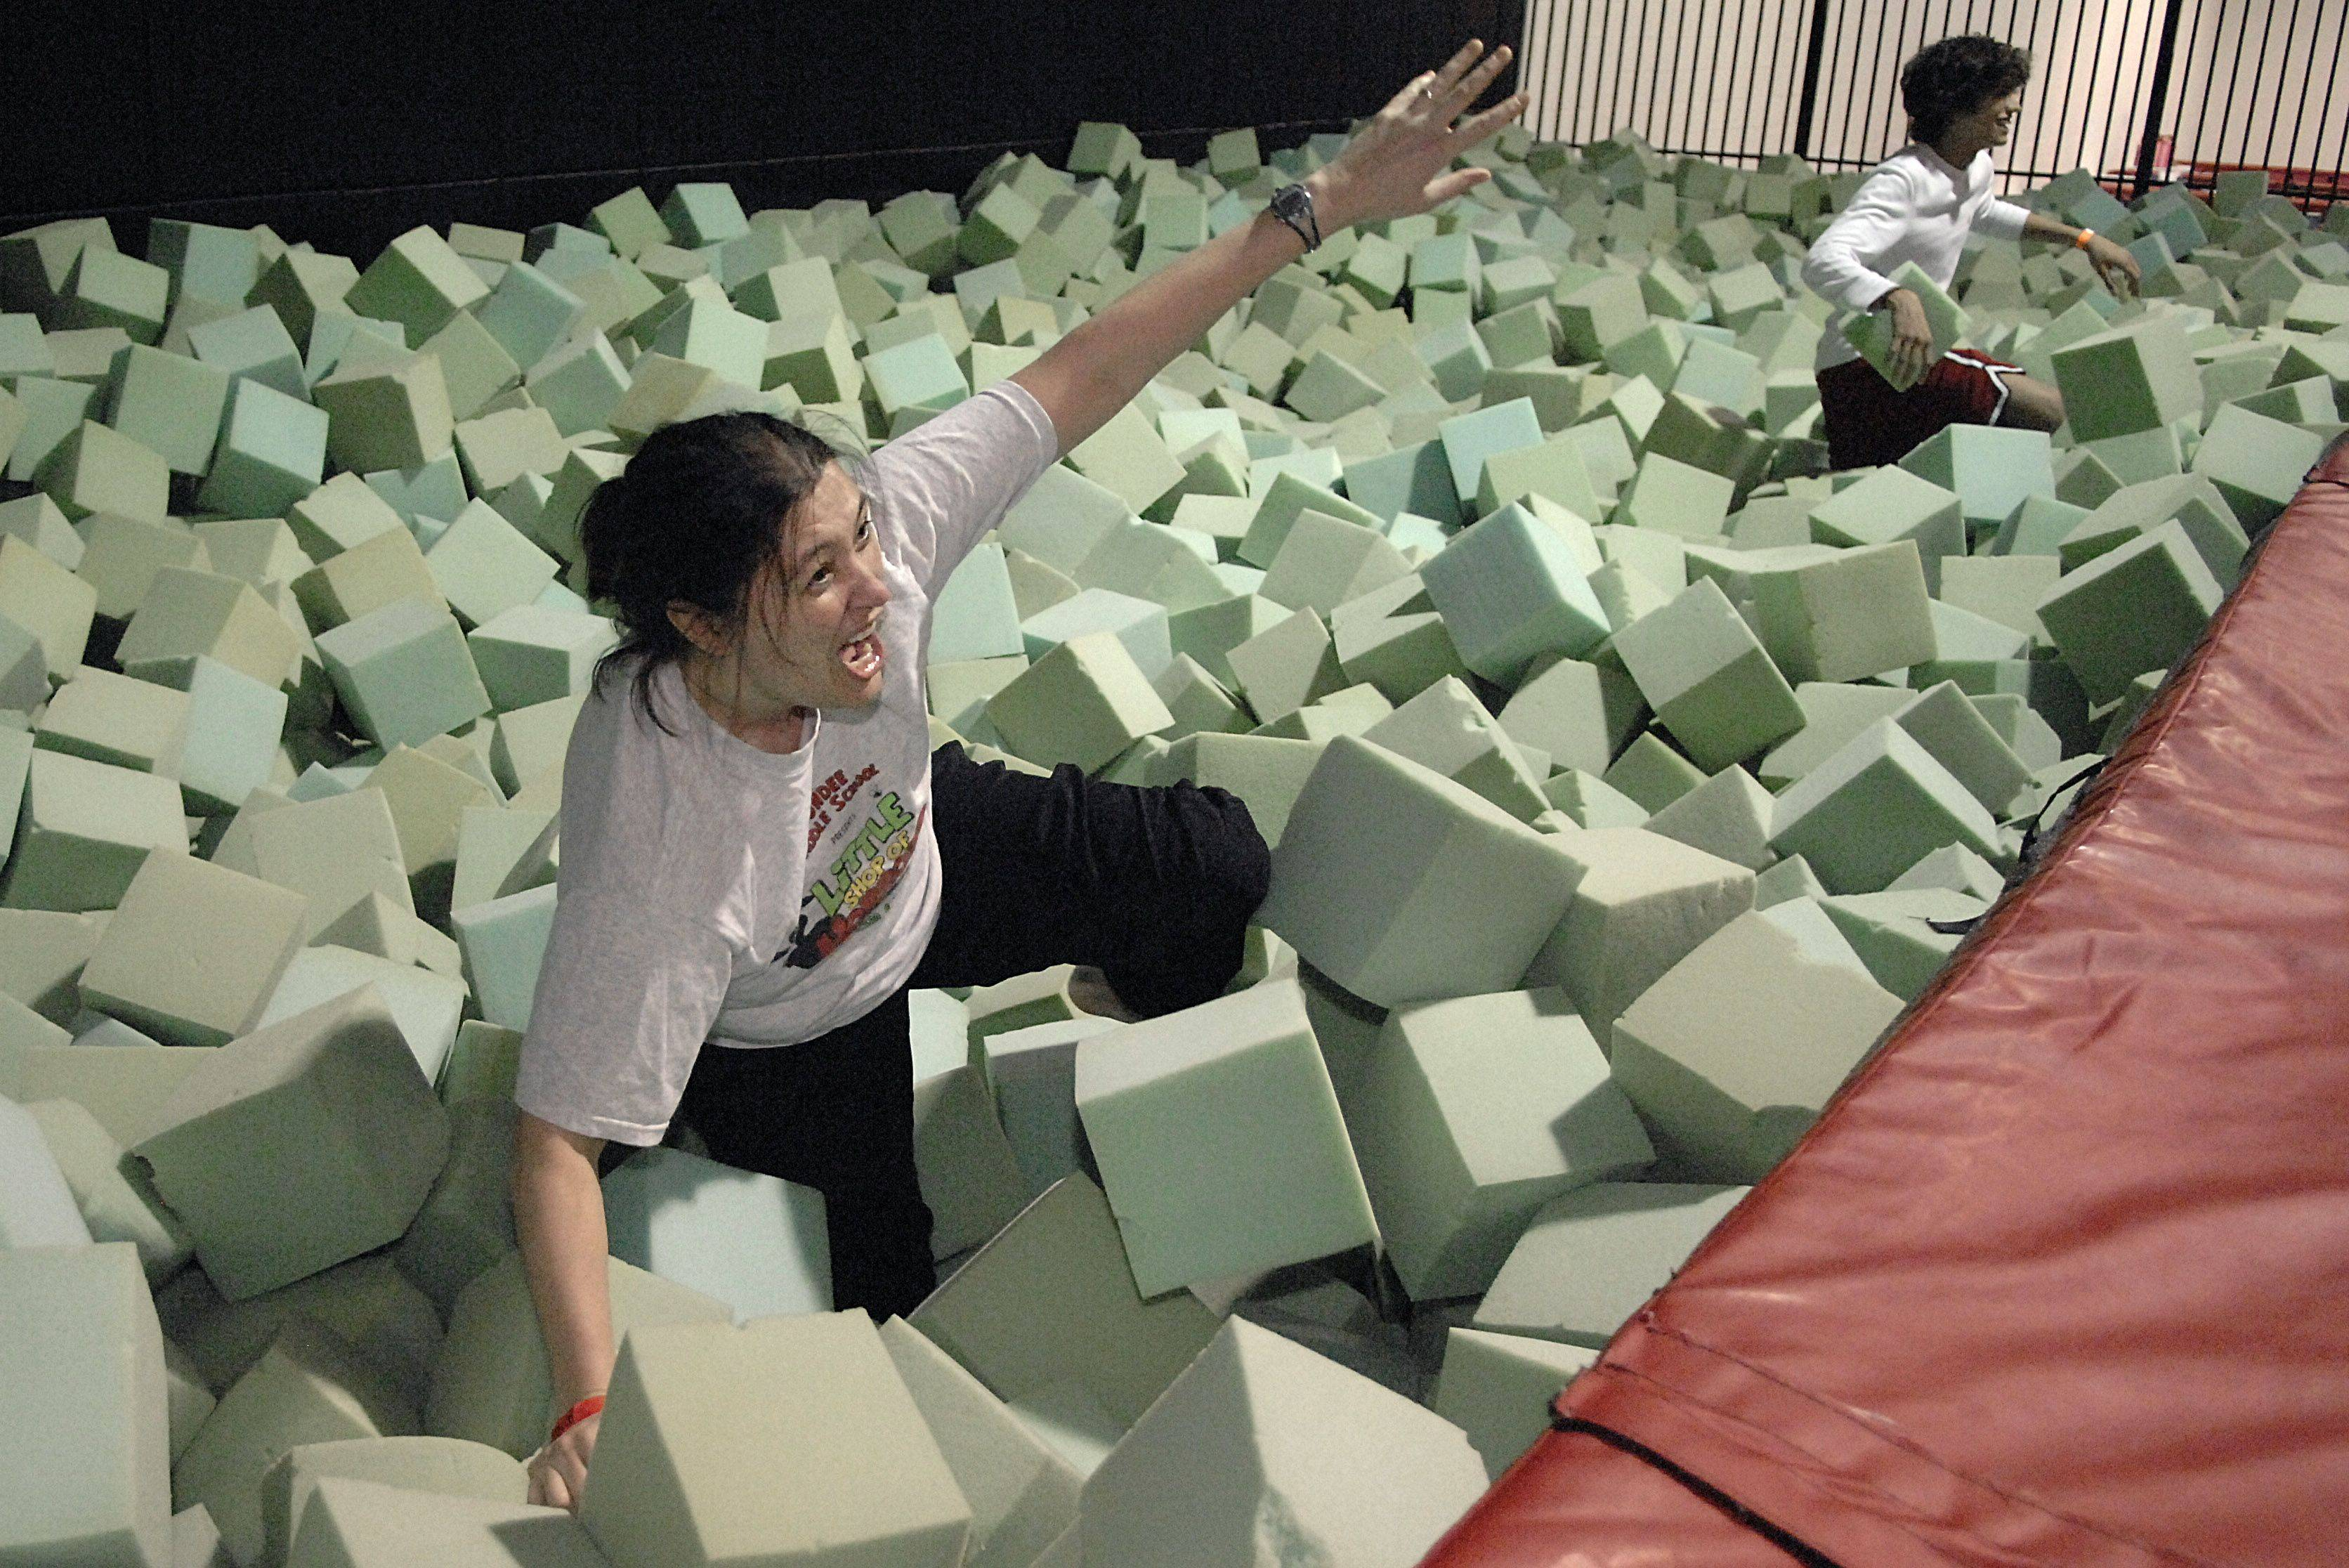 Dundee Middle School eighth grade resource teacher Ann Campbell digs her way out of a foam pit after jumping into via trampoline during the Bounce Out Cancer fundraiser at Xtreme Trampolines in Carol Stream on Friday, March 18.